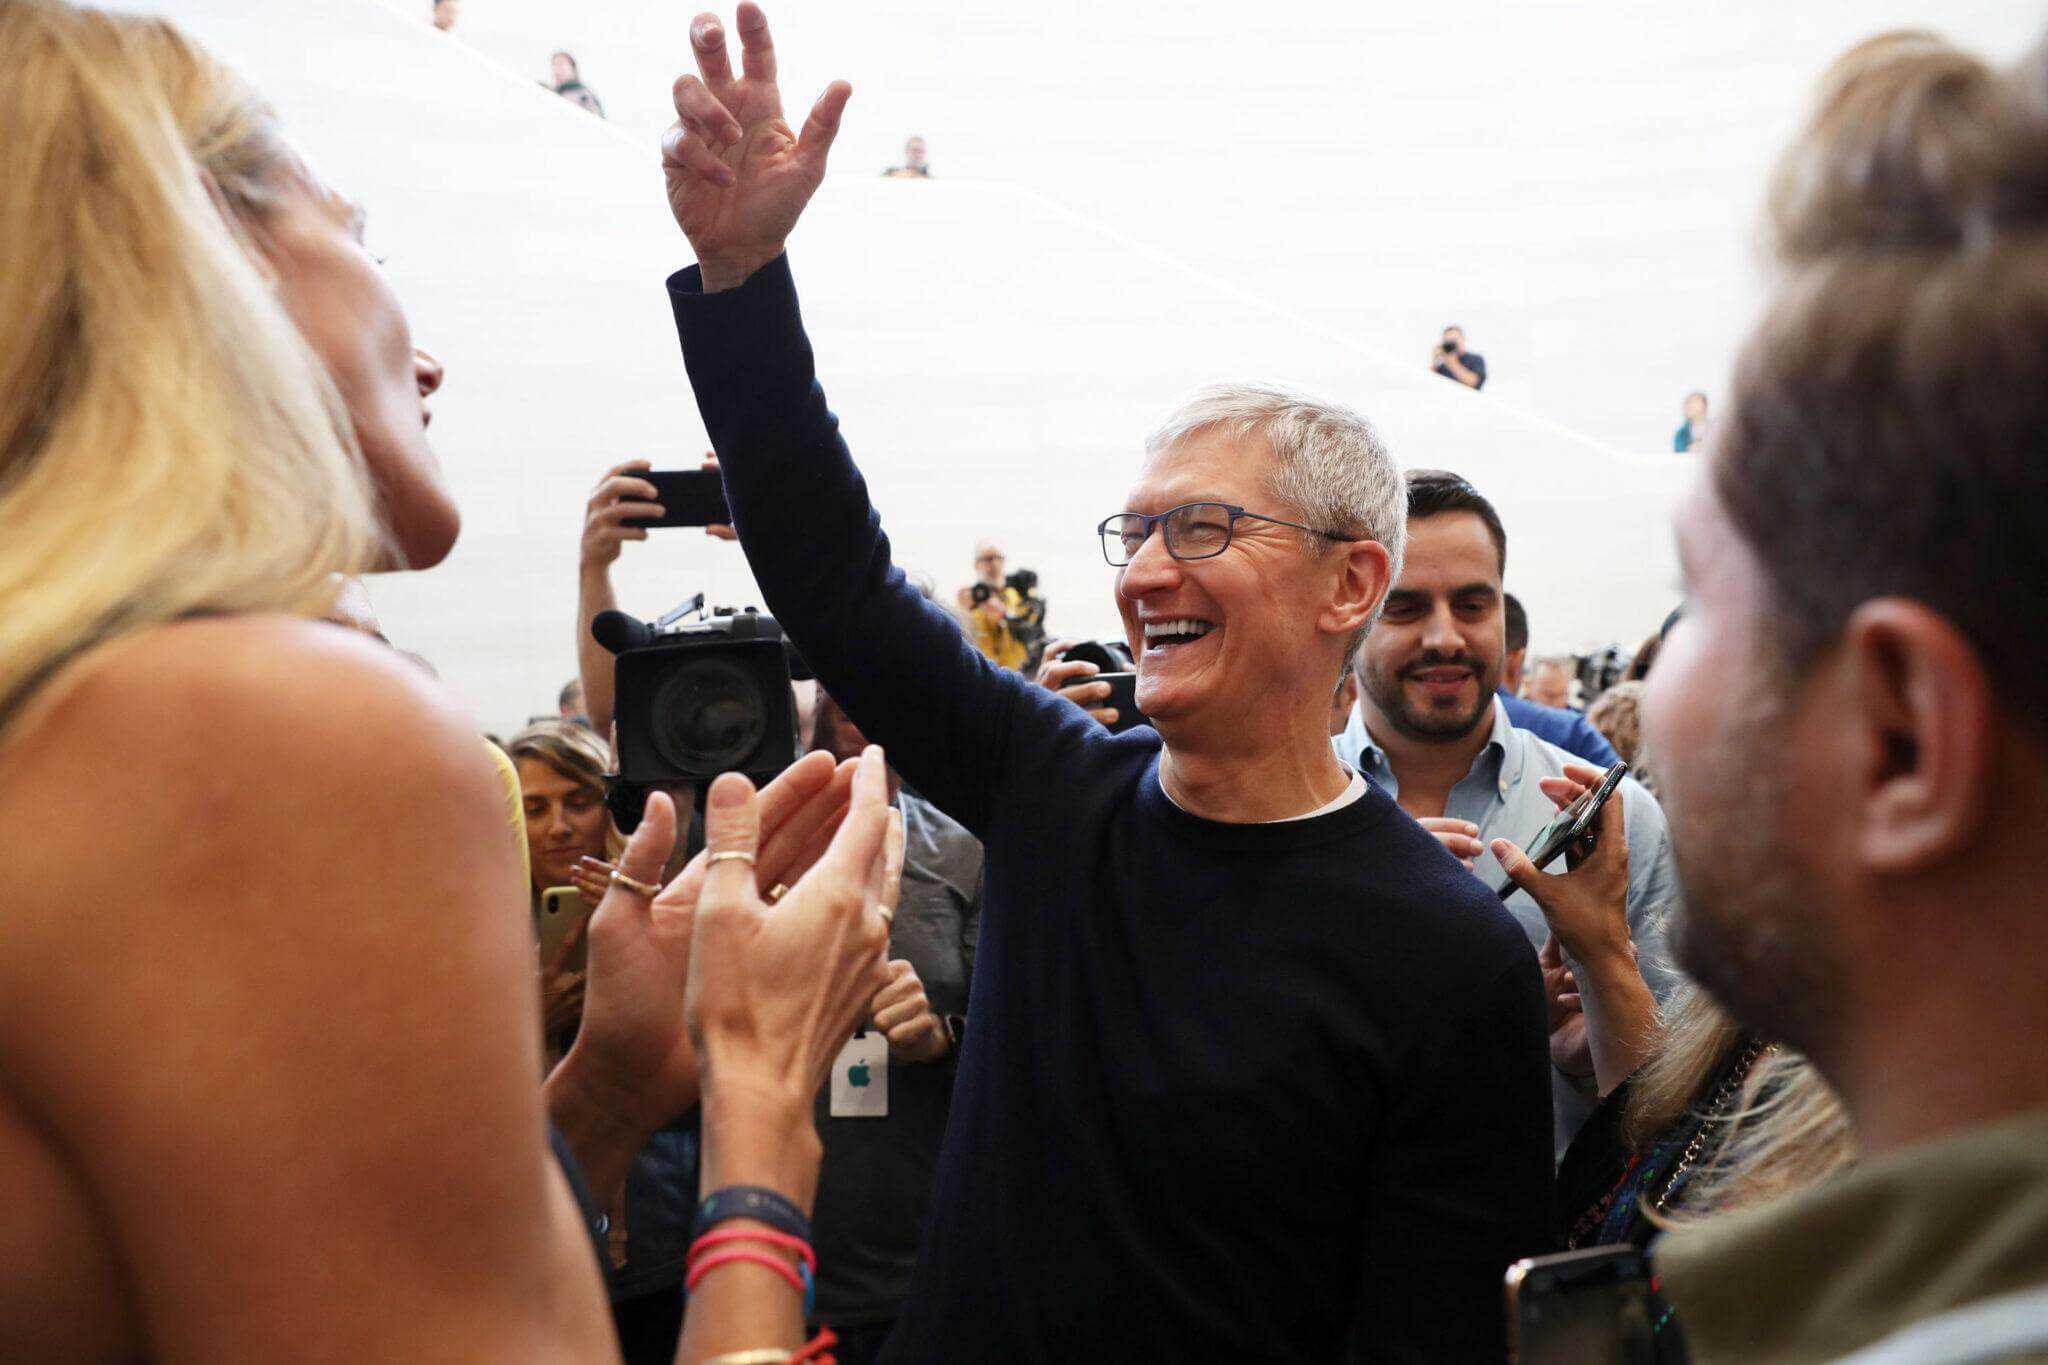 apple becomes most valuable company in the world